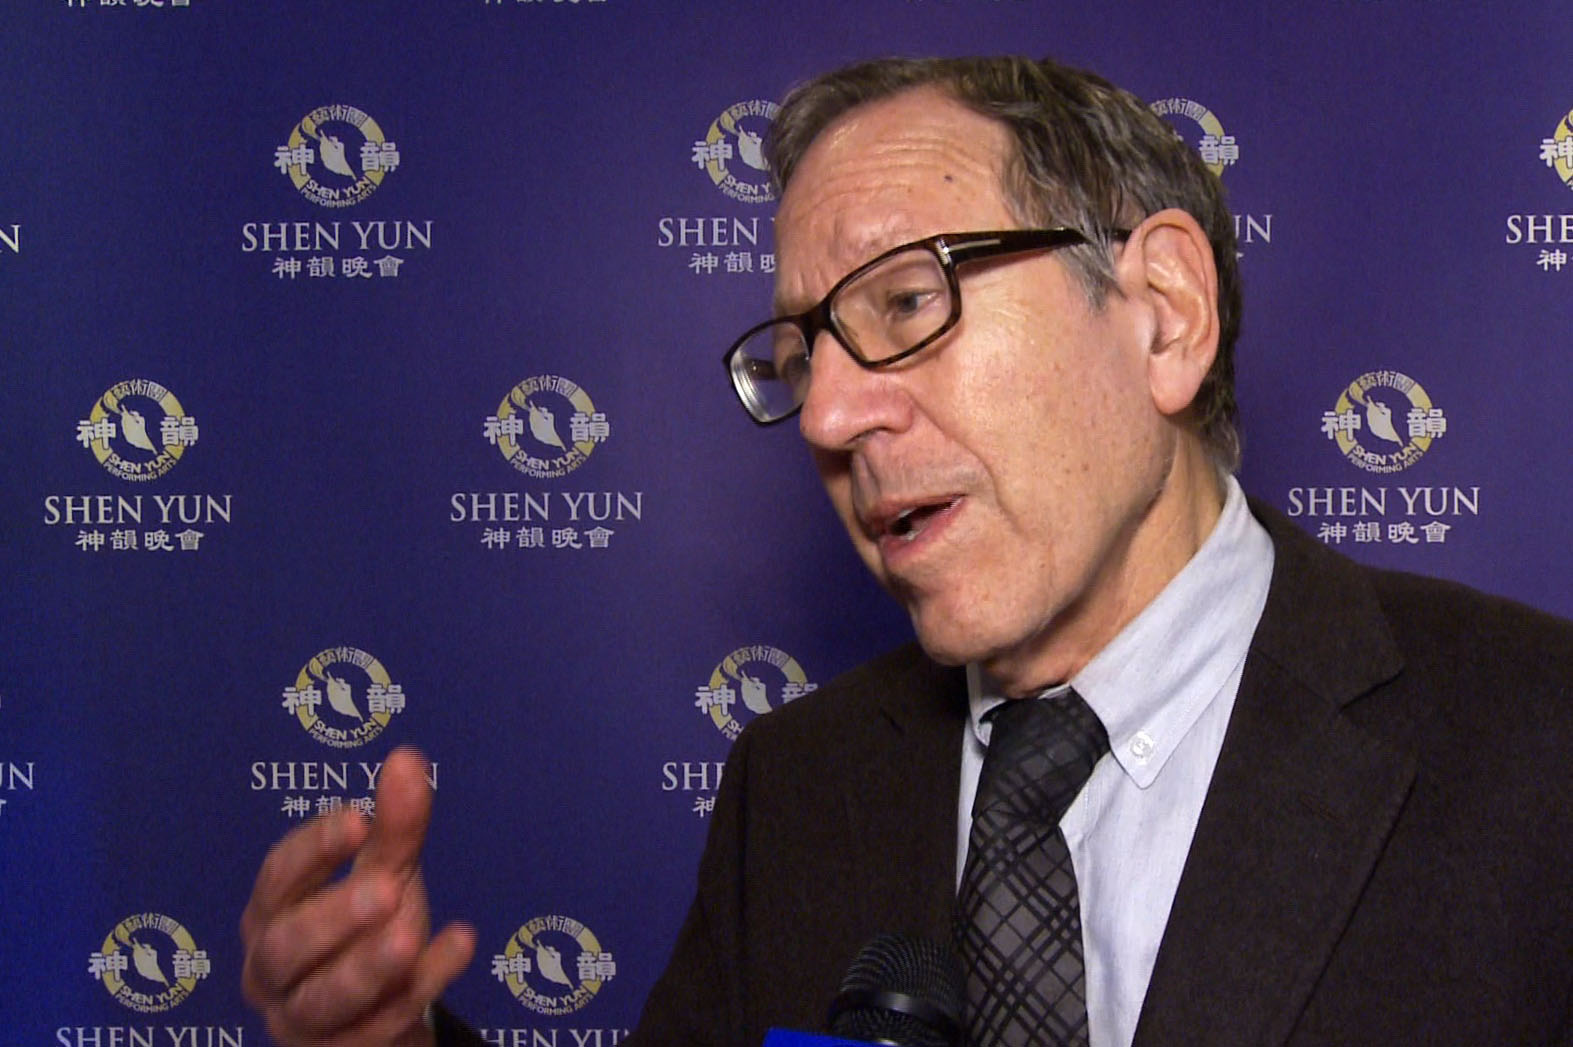 Former Canadian MP Irwin Cotler says Shen Yun is a 'very hopeful performance' after seeing the show at the Sony Centre for the Performing Arts on April 21, 2016. (NTD Television)